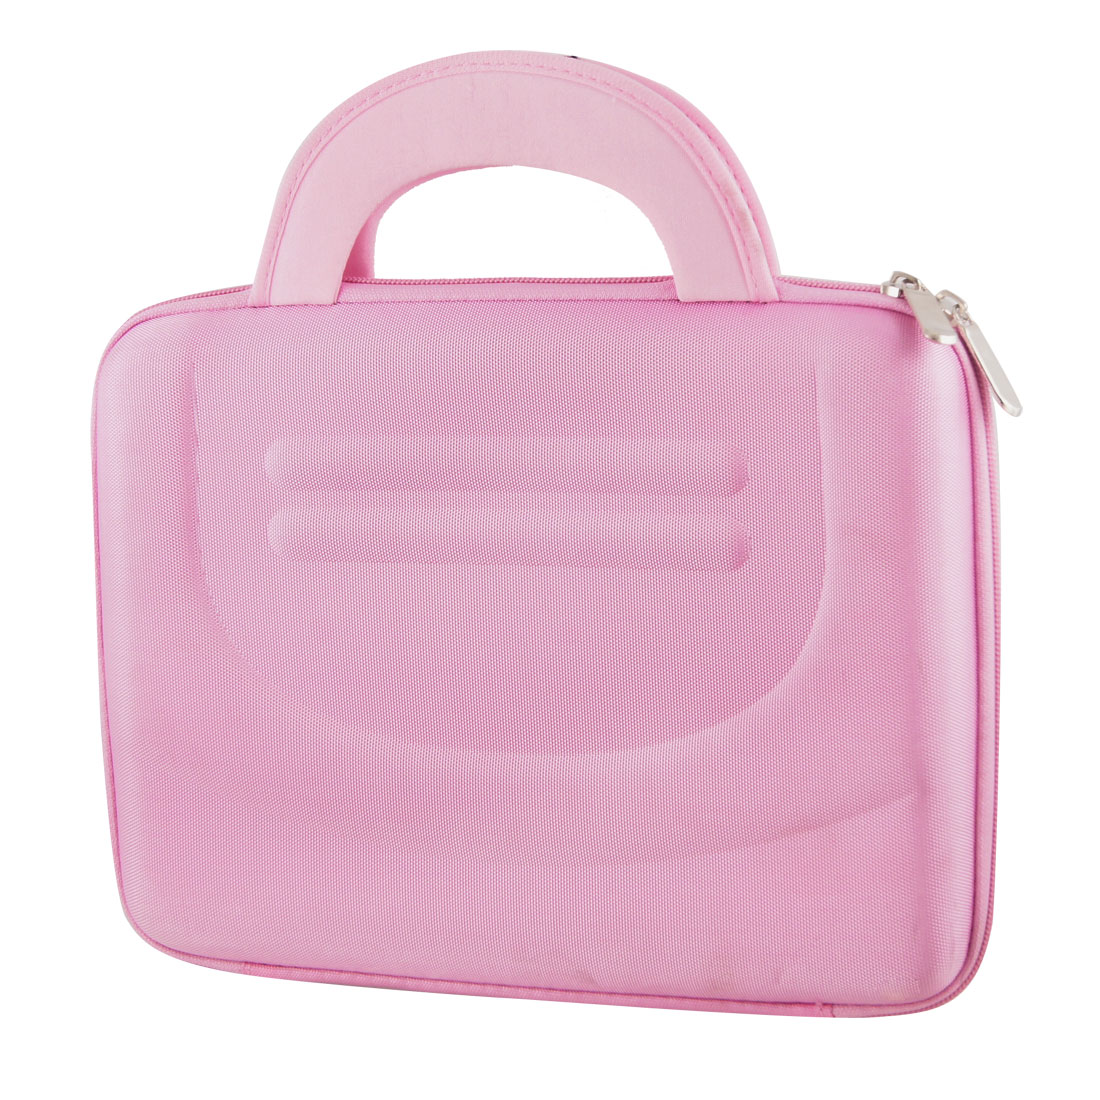 "10"" 10.1"" 10.2"" Pink Dual Zipper Tablet PC Laptop Sleeve Handbag Case for iPad"